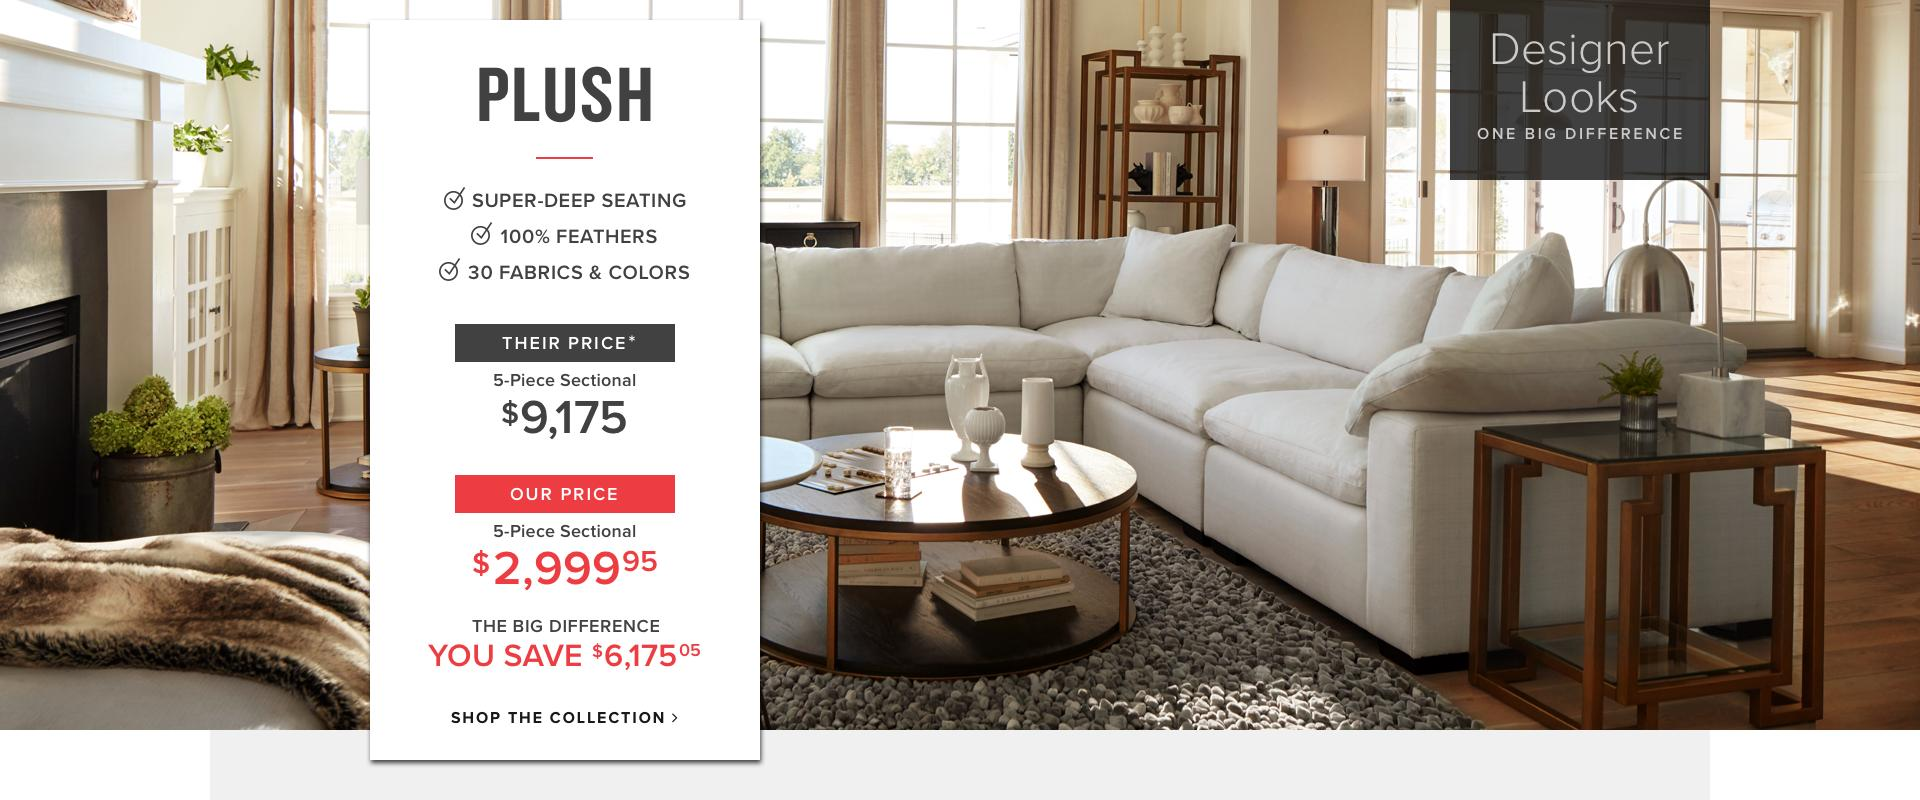 Designer Looks   One Big Difference. Featuring The Plush 5 Piece Sectional.  Their